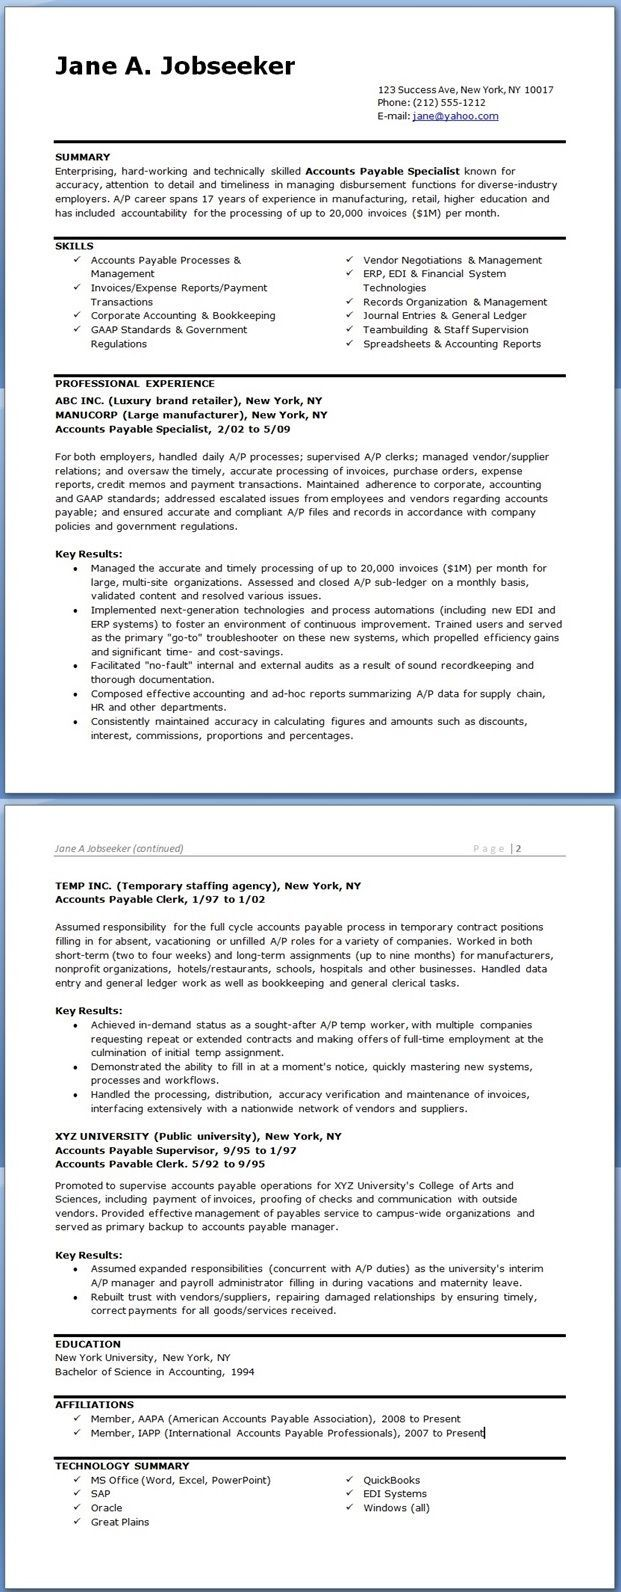 accounts payable specialist resume templates downloads accounting professional examples Resume Full Cycle Accounts Payable Resume